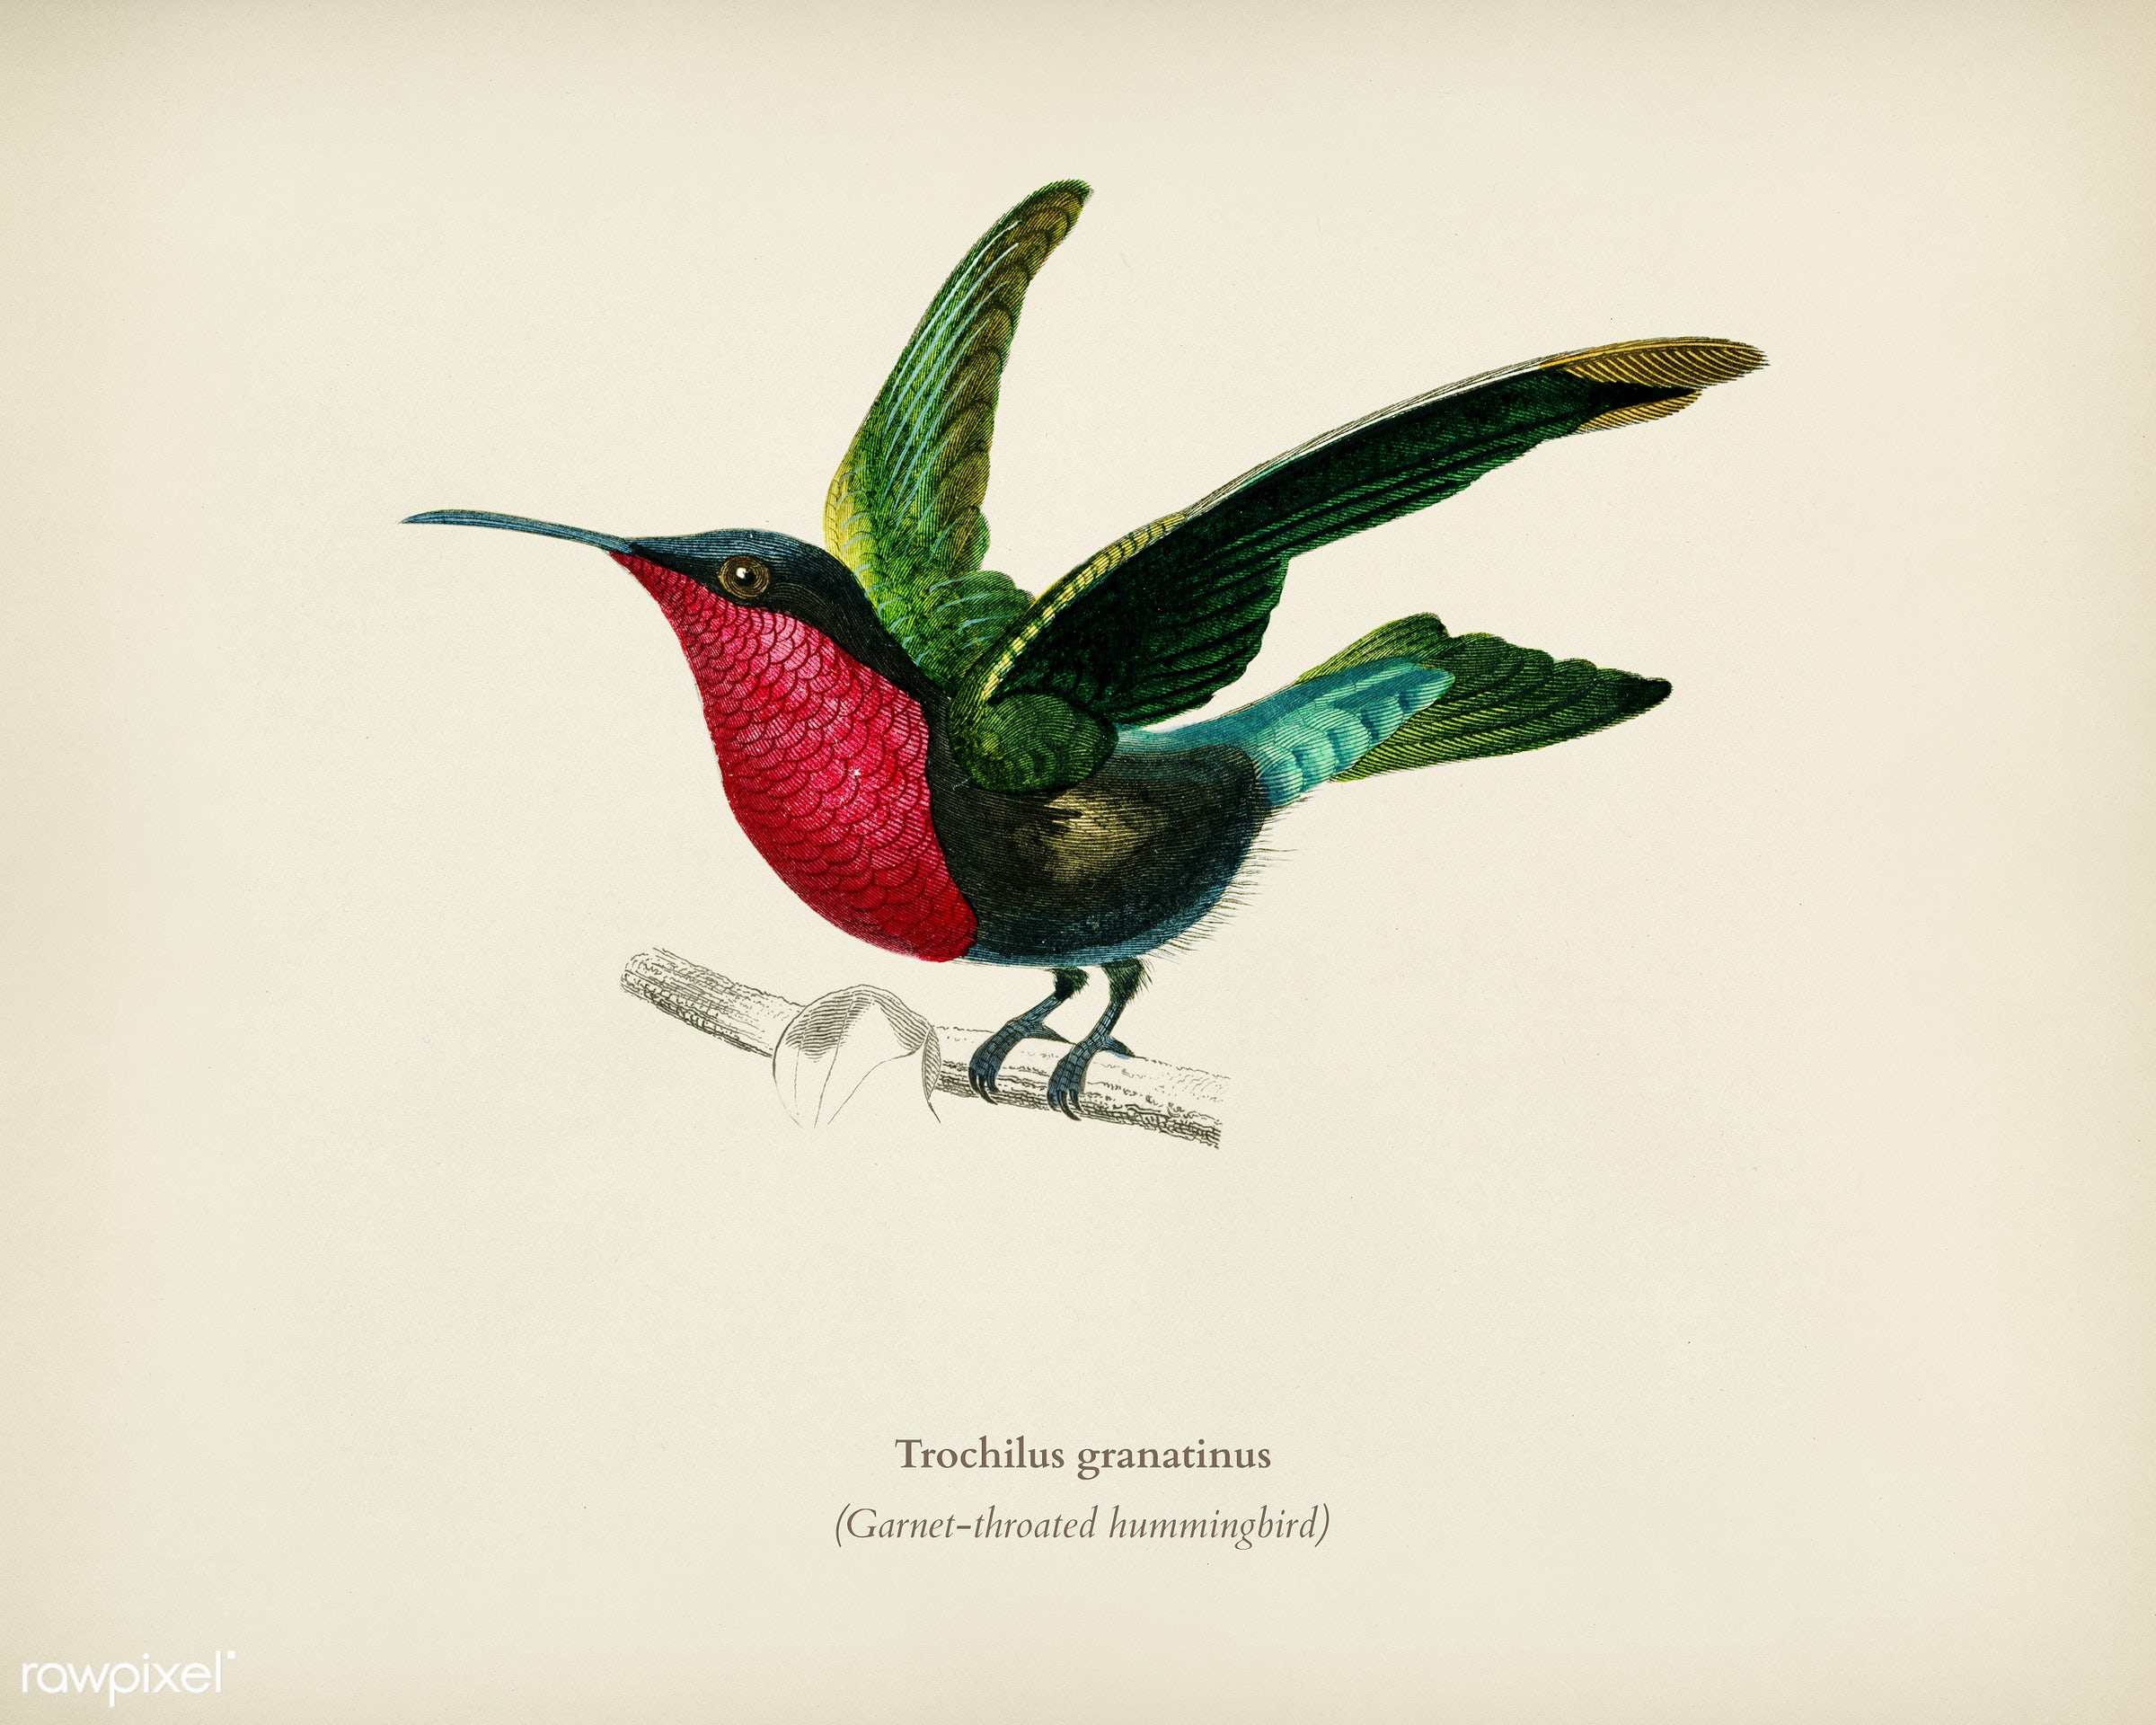 Garnet-throated hummingbird (Trochilus granatinus) illustrated by Charles Dessalines D' Orbigny (1806-1876). Digitally...